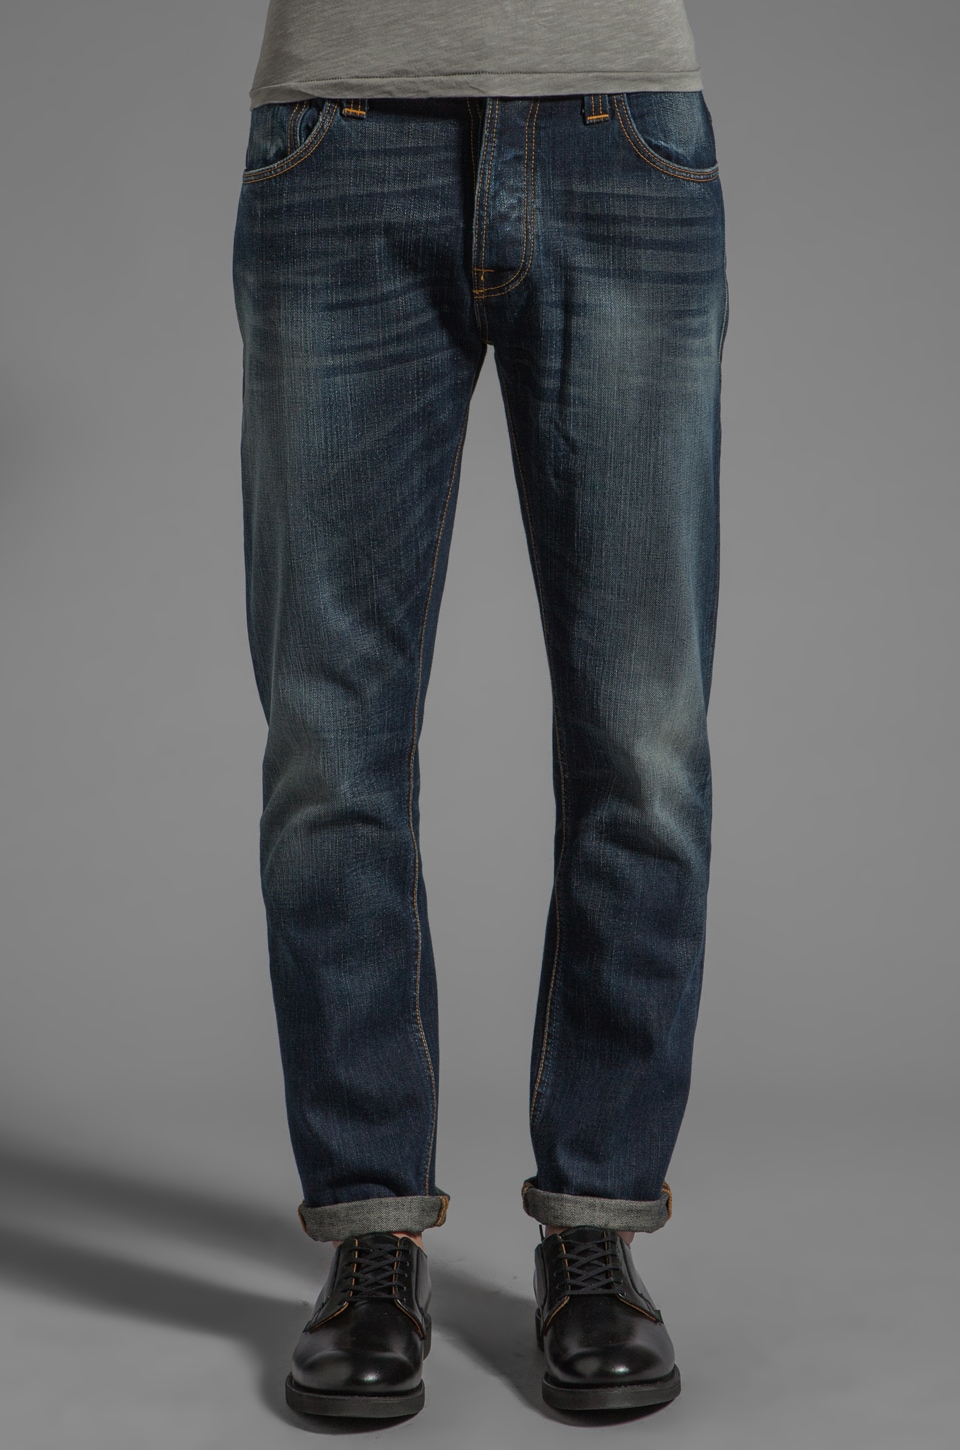 Nudie Jeans Hank Rey in Organic Indigo Depth